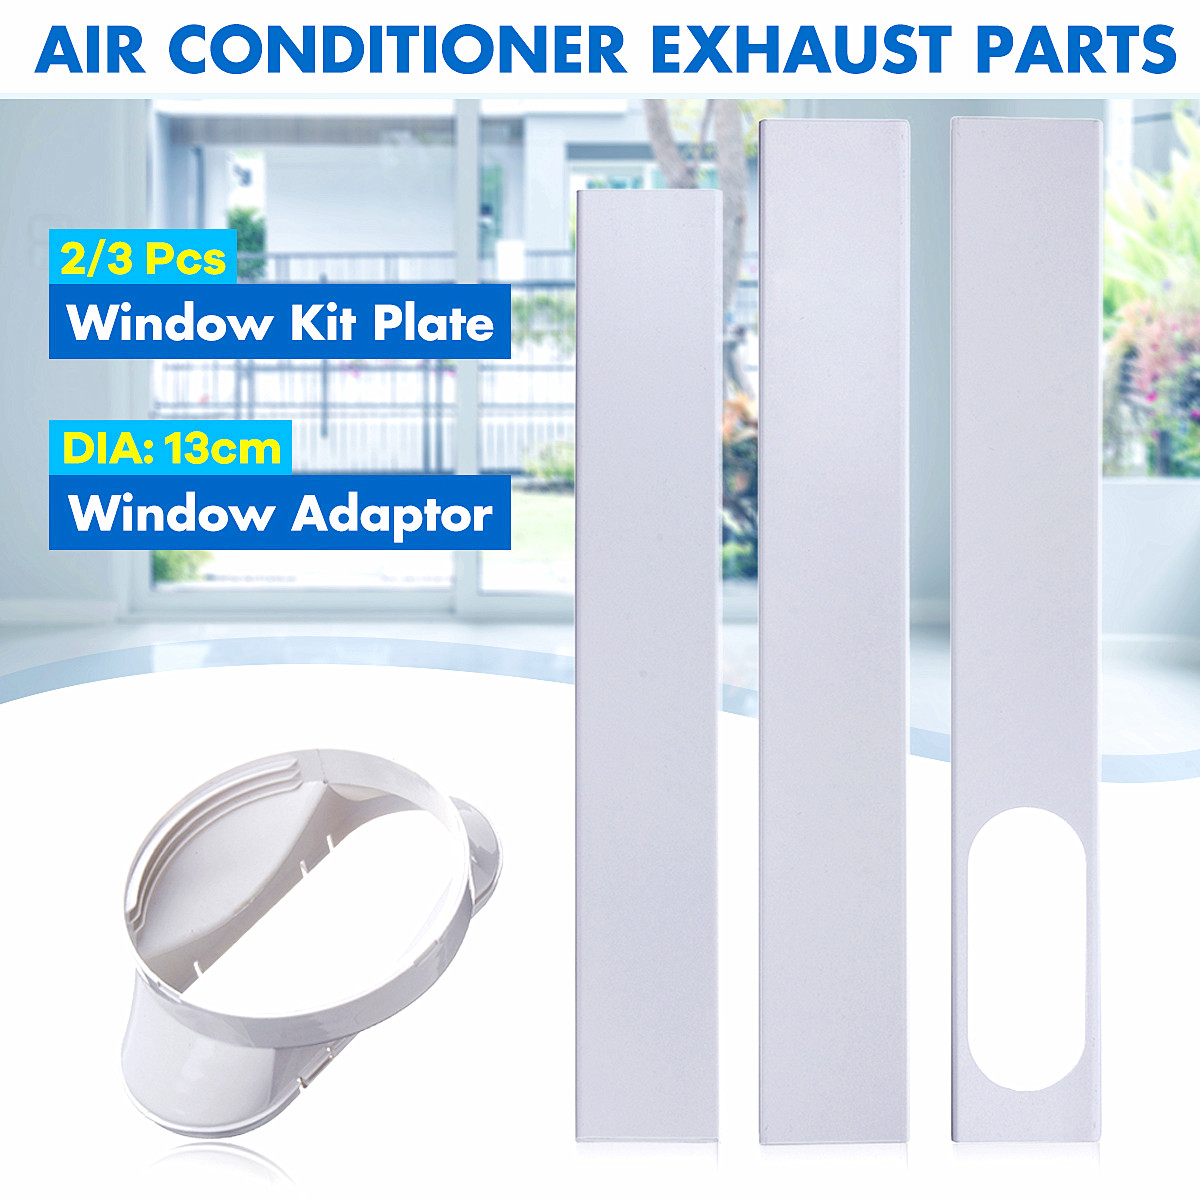 New 190cm Adjustable Window Adaptor/Window Slide Kit Plate Exhaust Hose Tube Connector For Portable Air Conditioner AccessoriesNew 190cm Adjustable Window Adaptor/Window Slide Kit Plate Exhaust Hose Tube Connector For Portable Air Conditioner Accessories